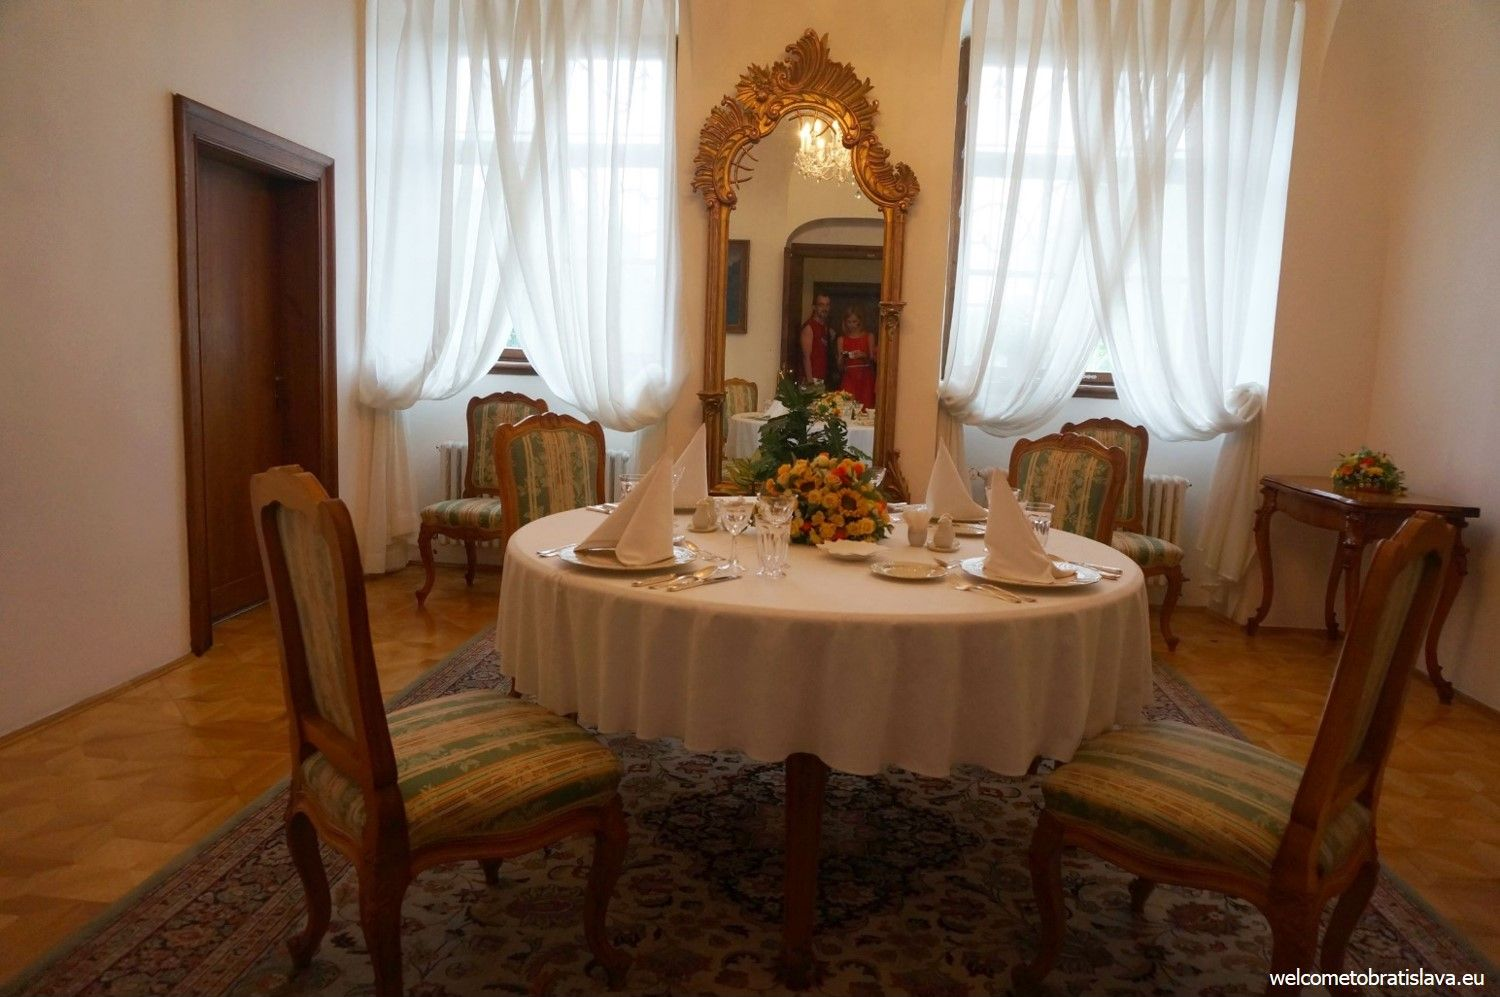 The Small Dining Room